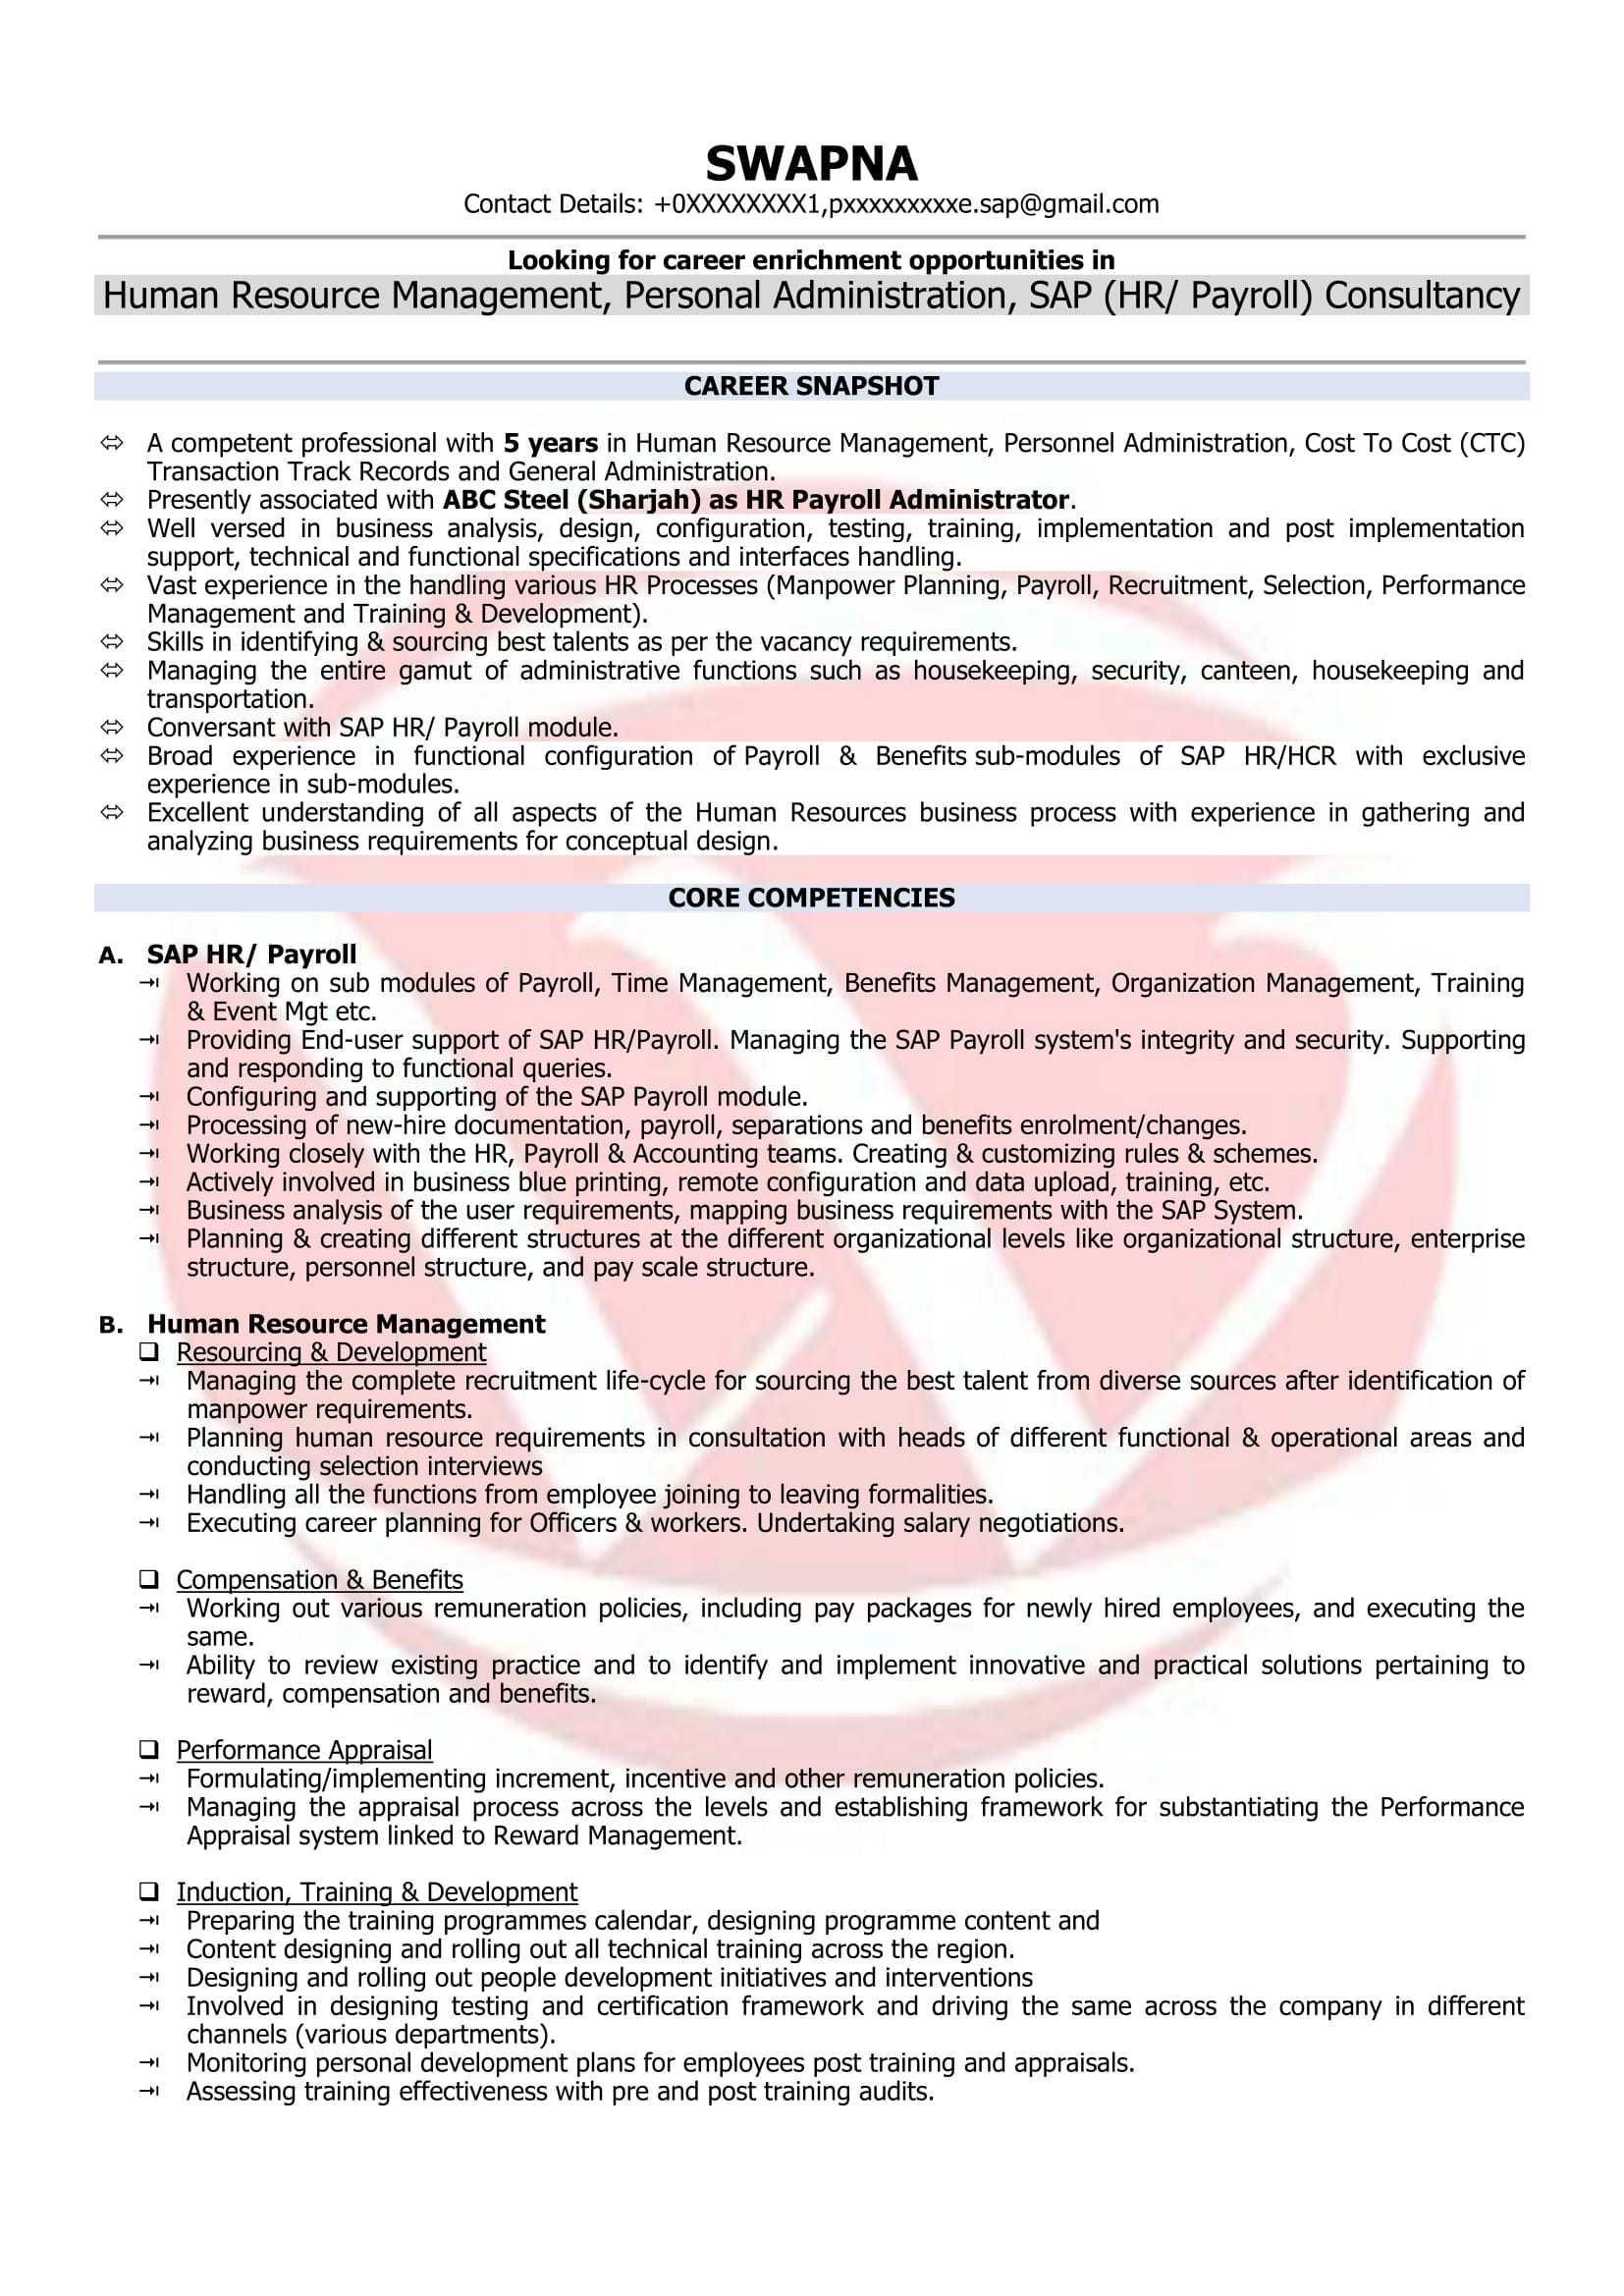 Hr executive sample resumes download resume format templates for Executive resume format download